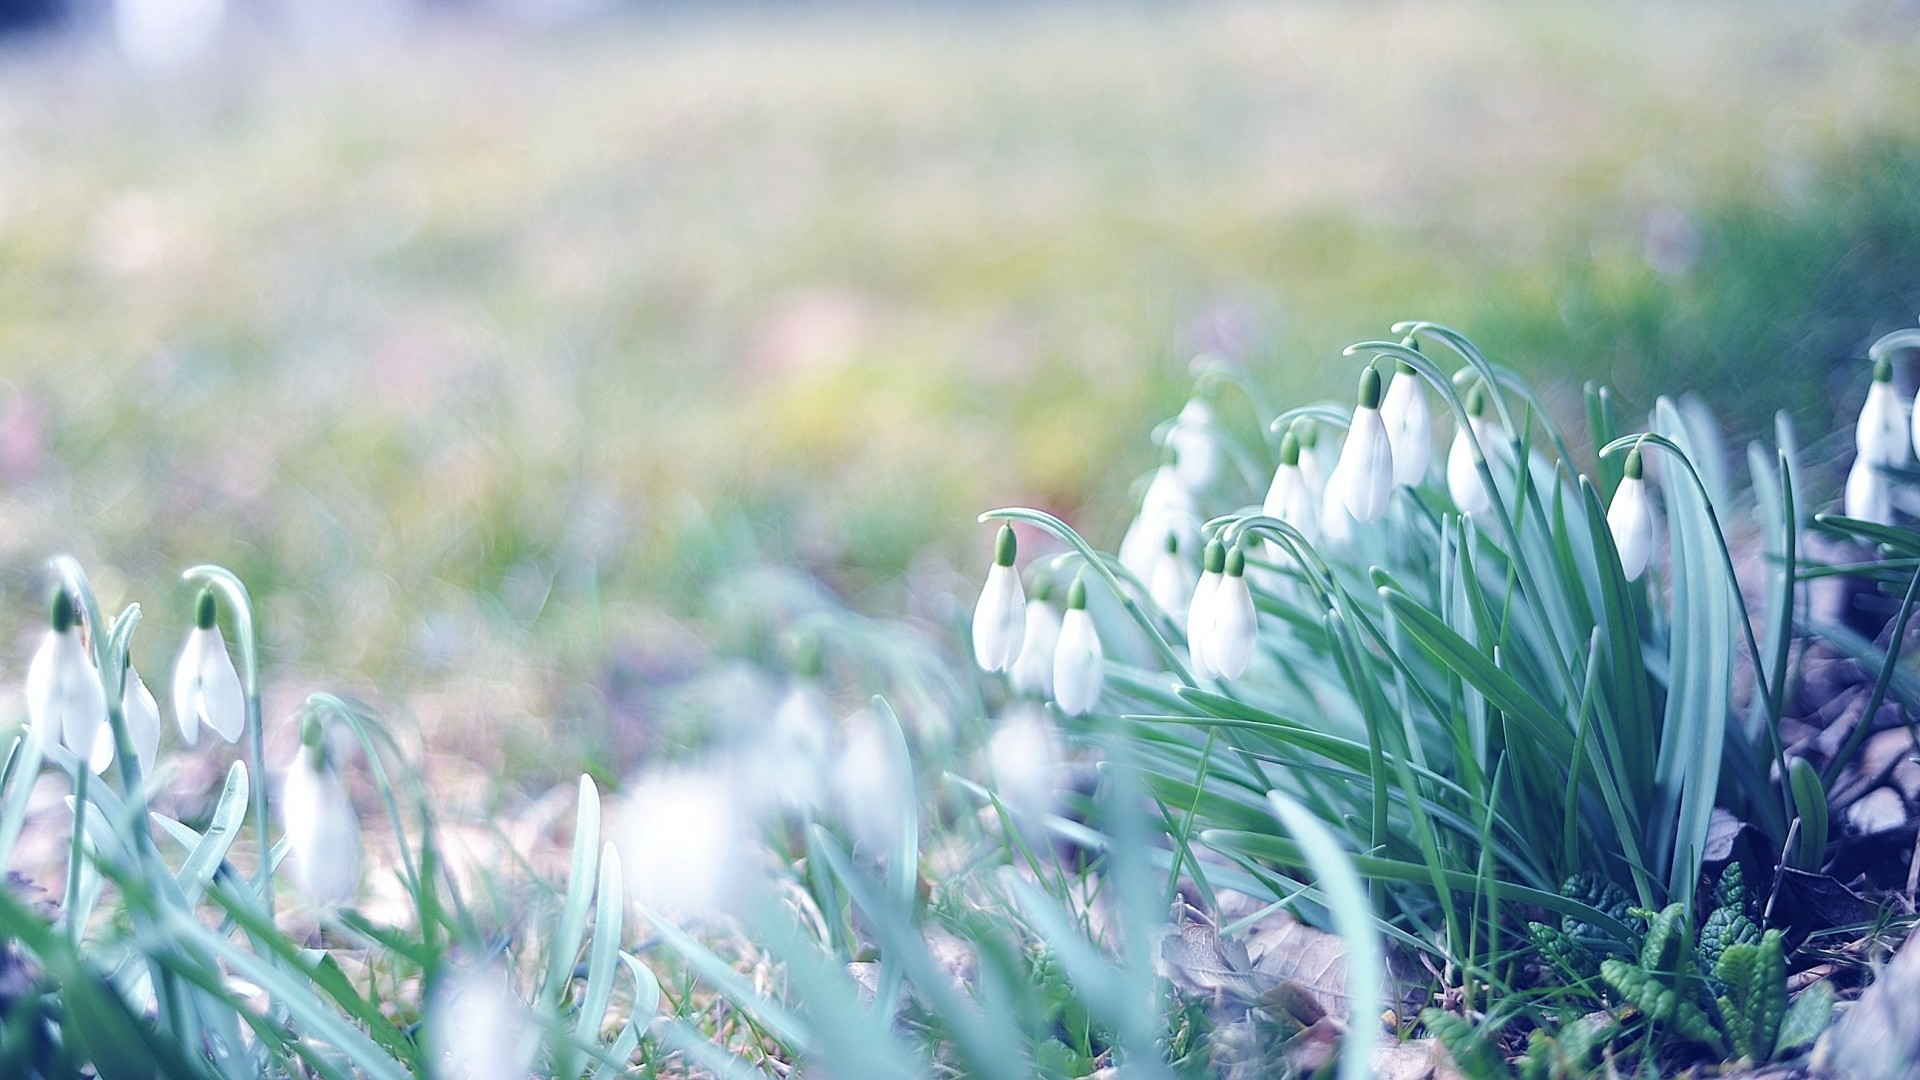 1920x1080 Preview wallpaper spring, snowdrops, grass, light, march